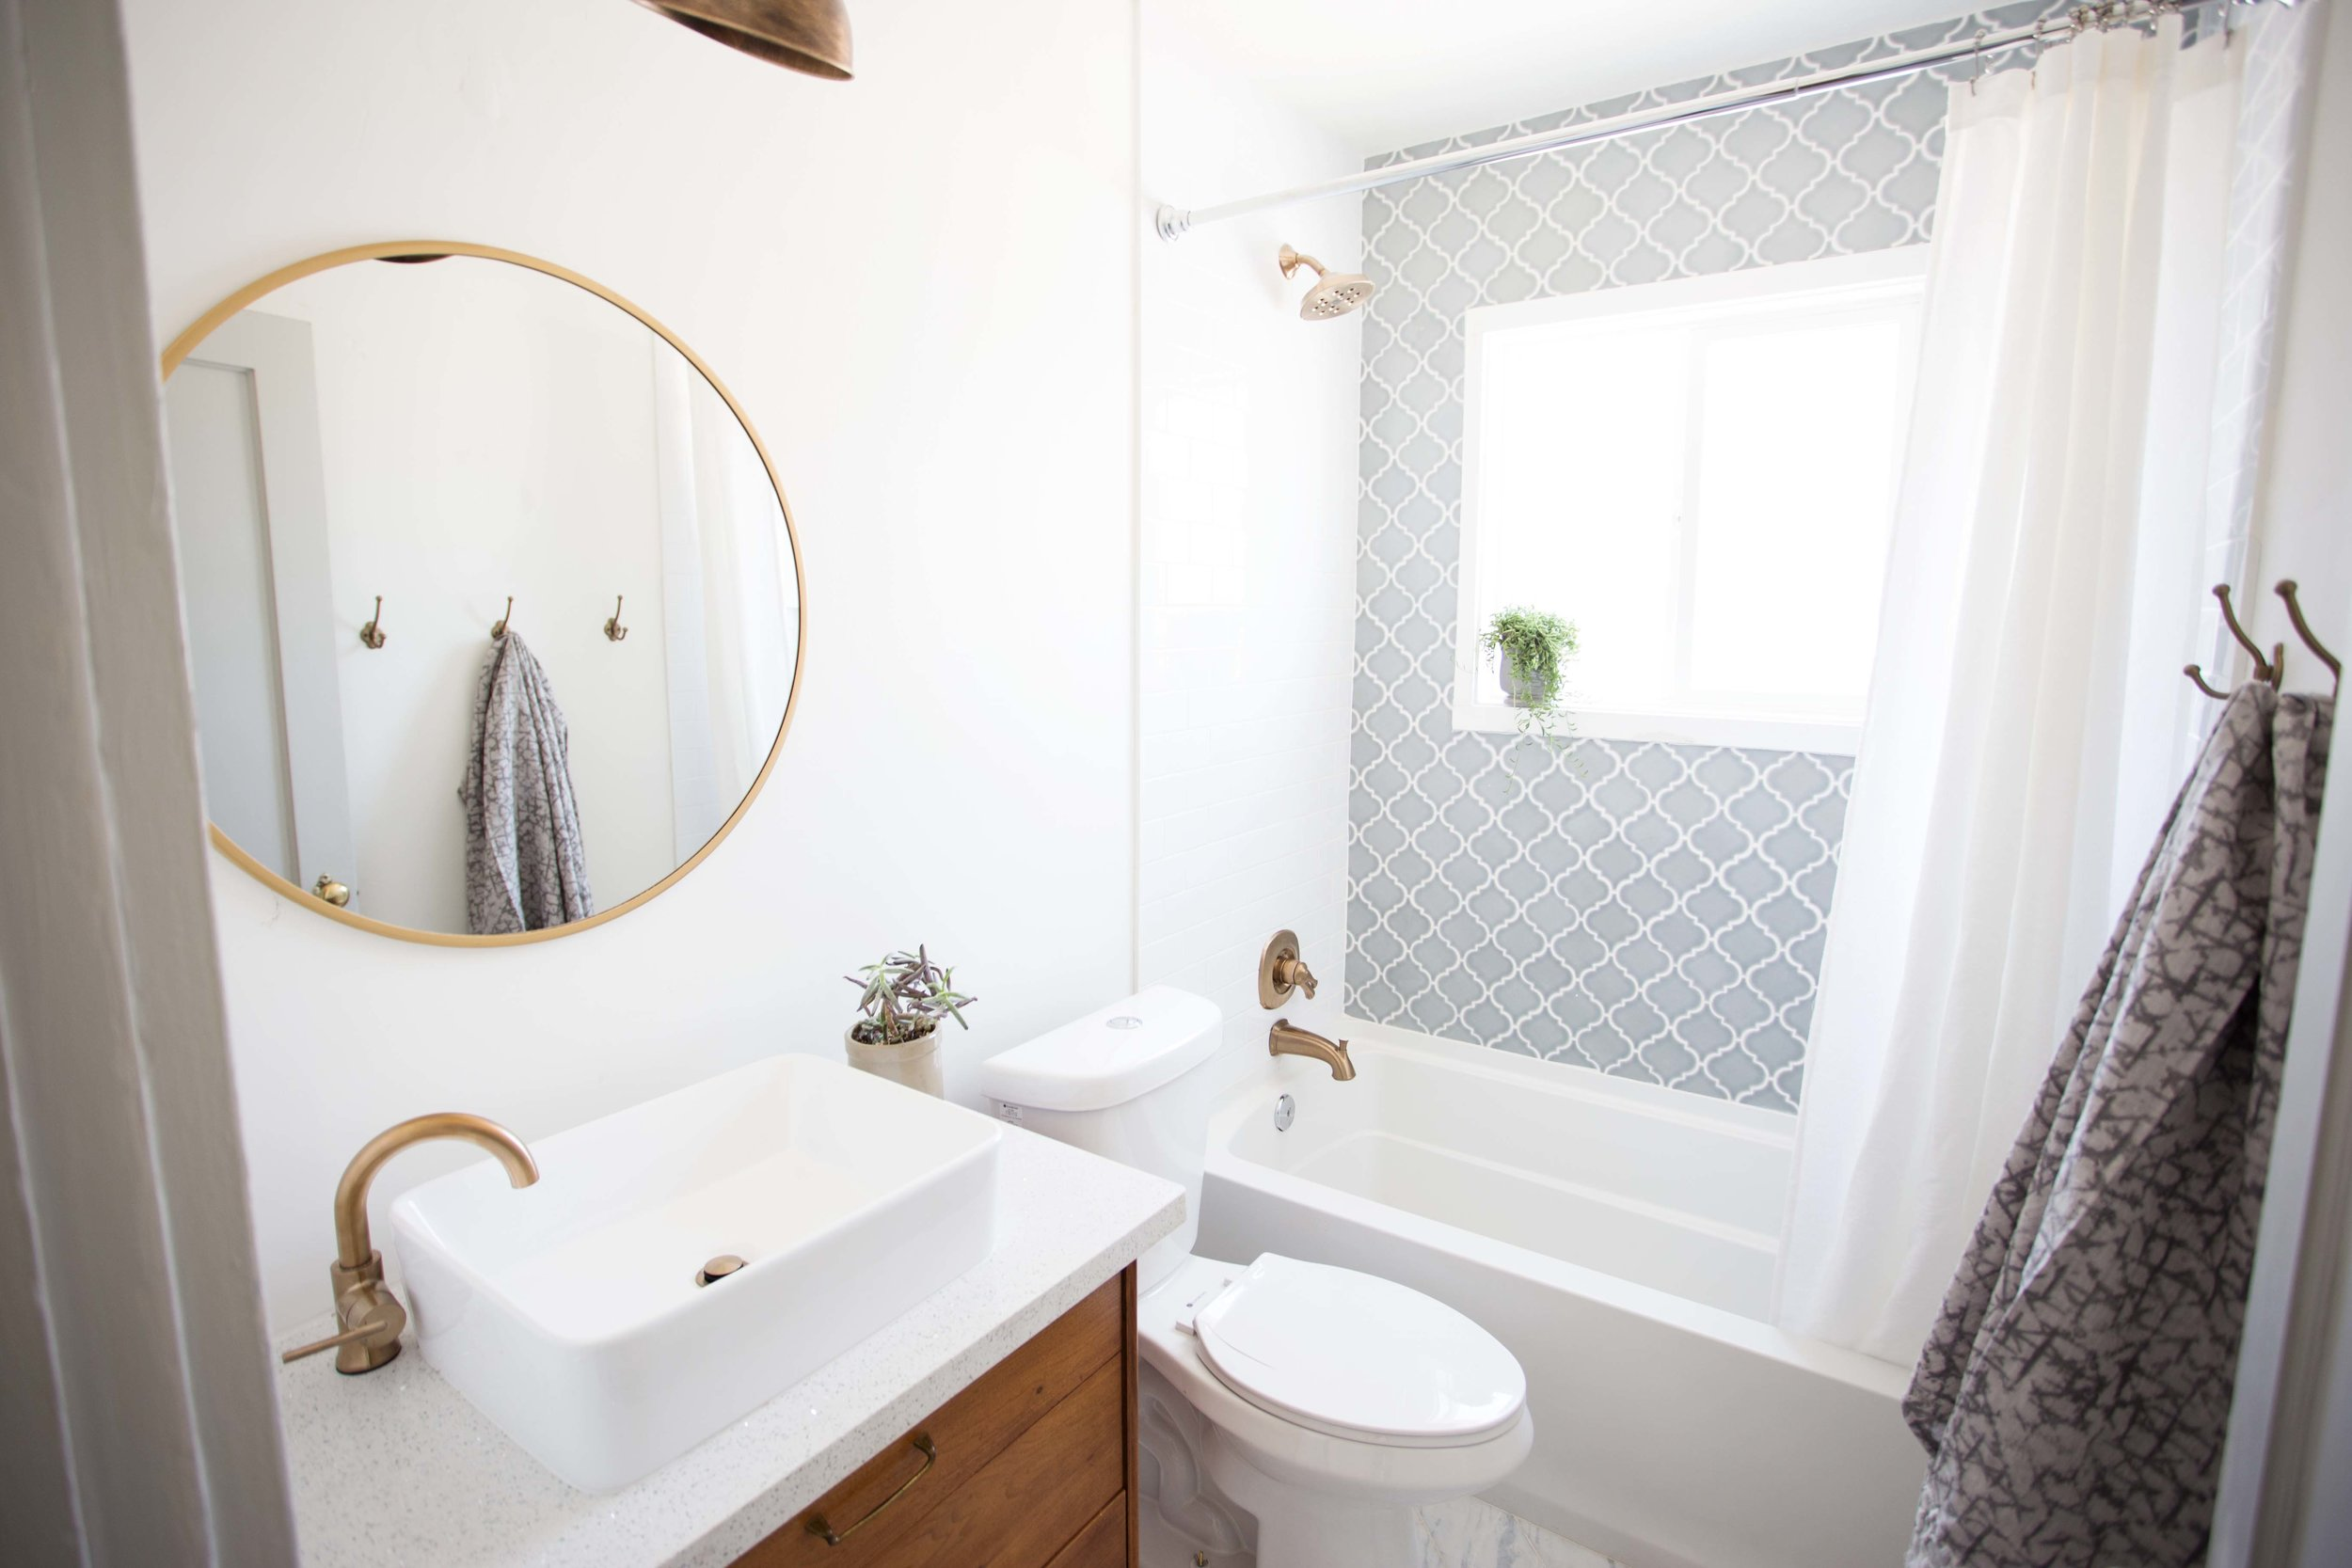 Arabesque style tile with subway tile and gold fixtures